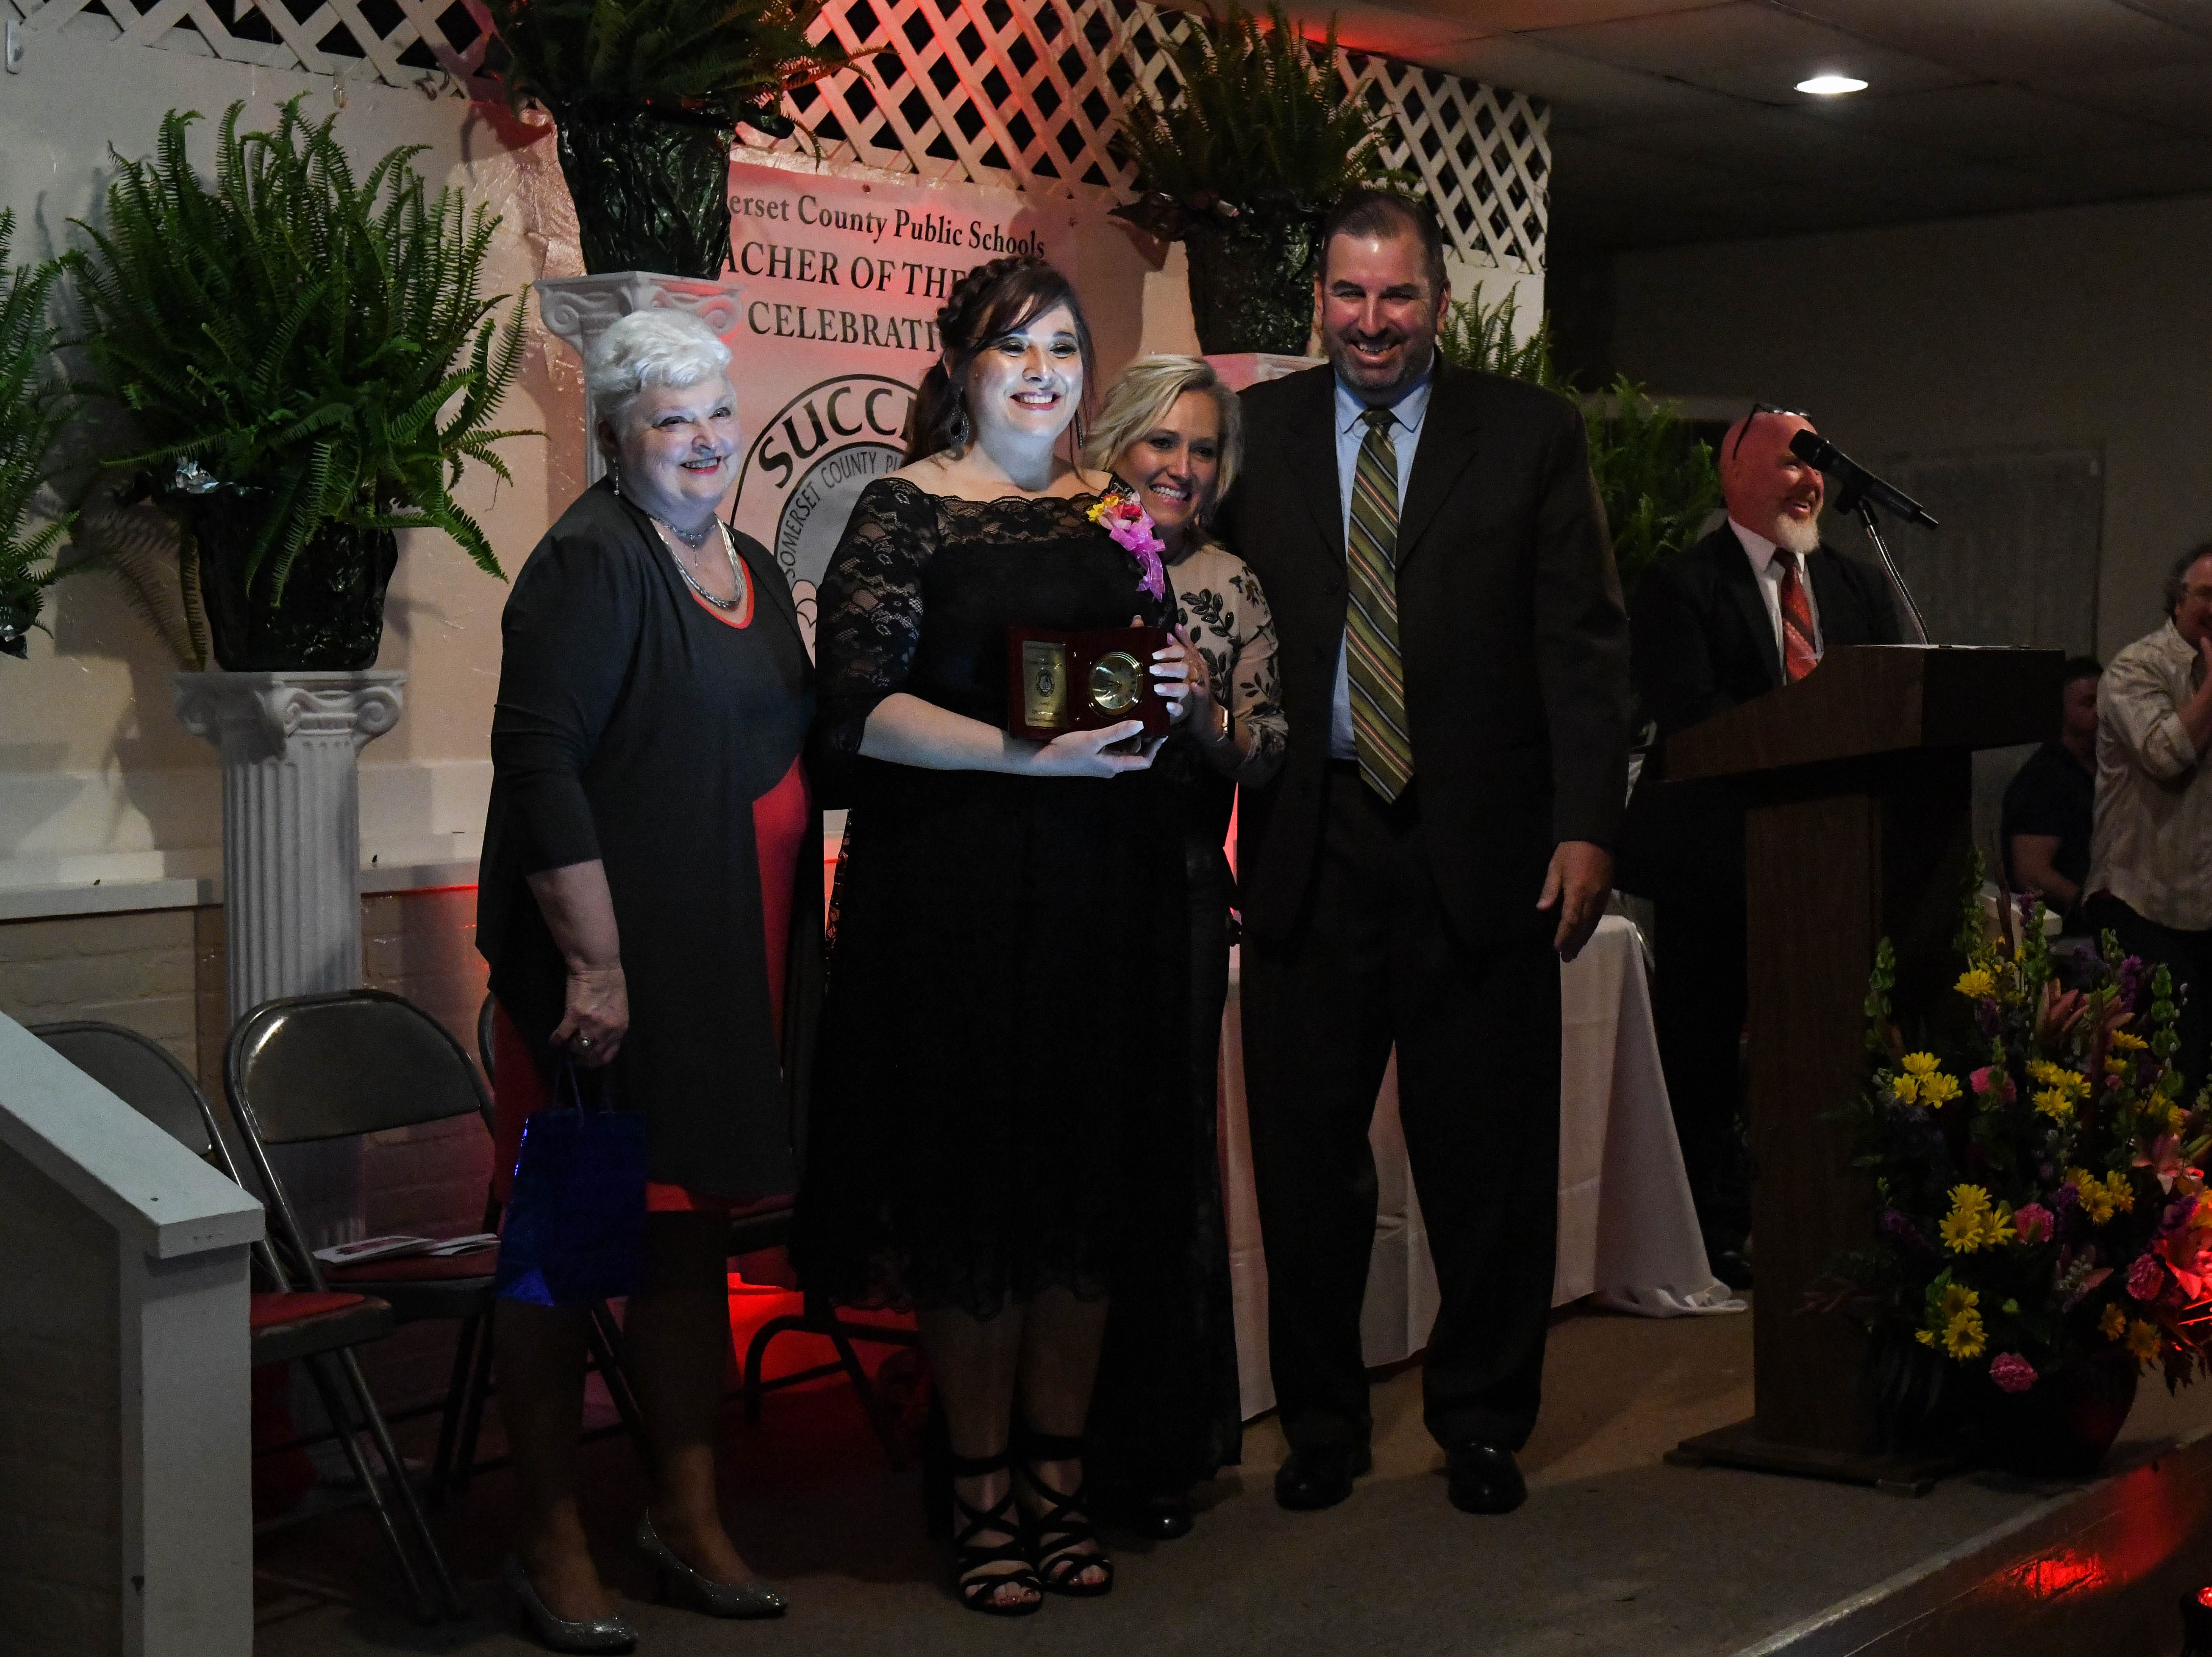 Christina South, Deal Island Elementary School teacher, receives the Somerset County teacher of the year award at the banquet on Friday, April 5, 2019.